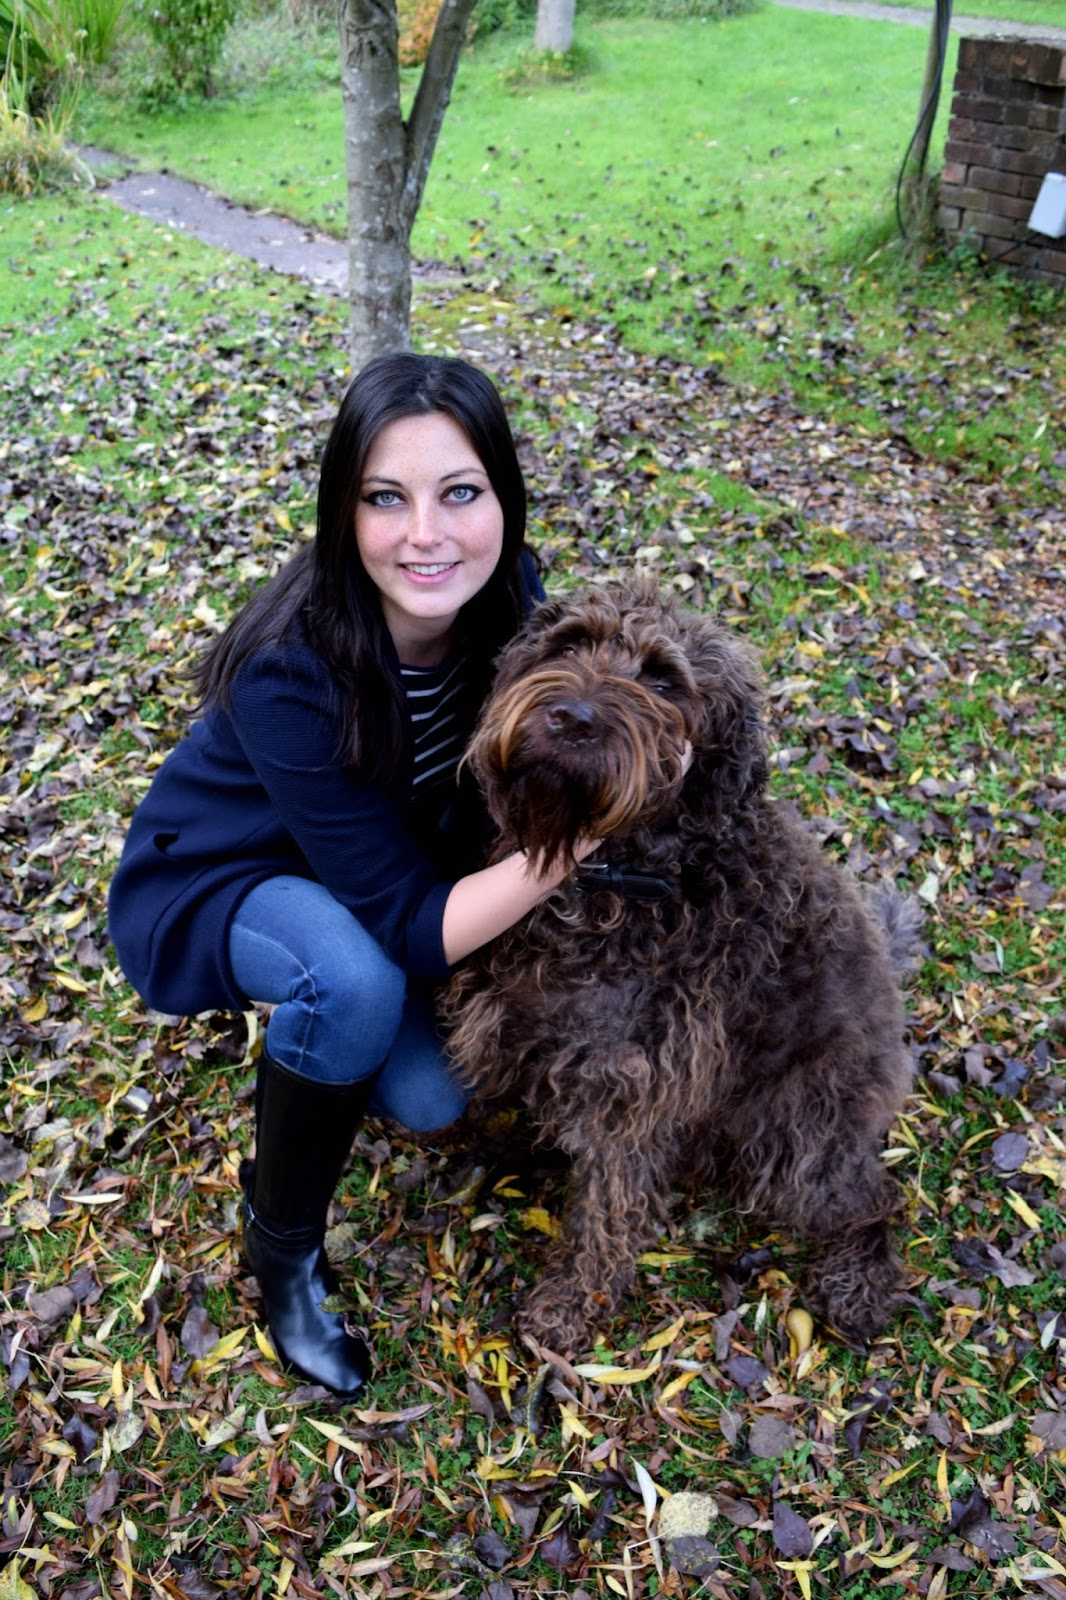 Labradoodle and autumn